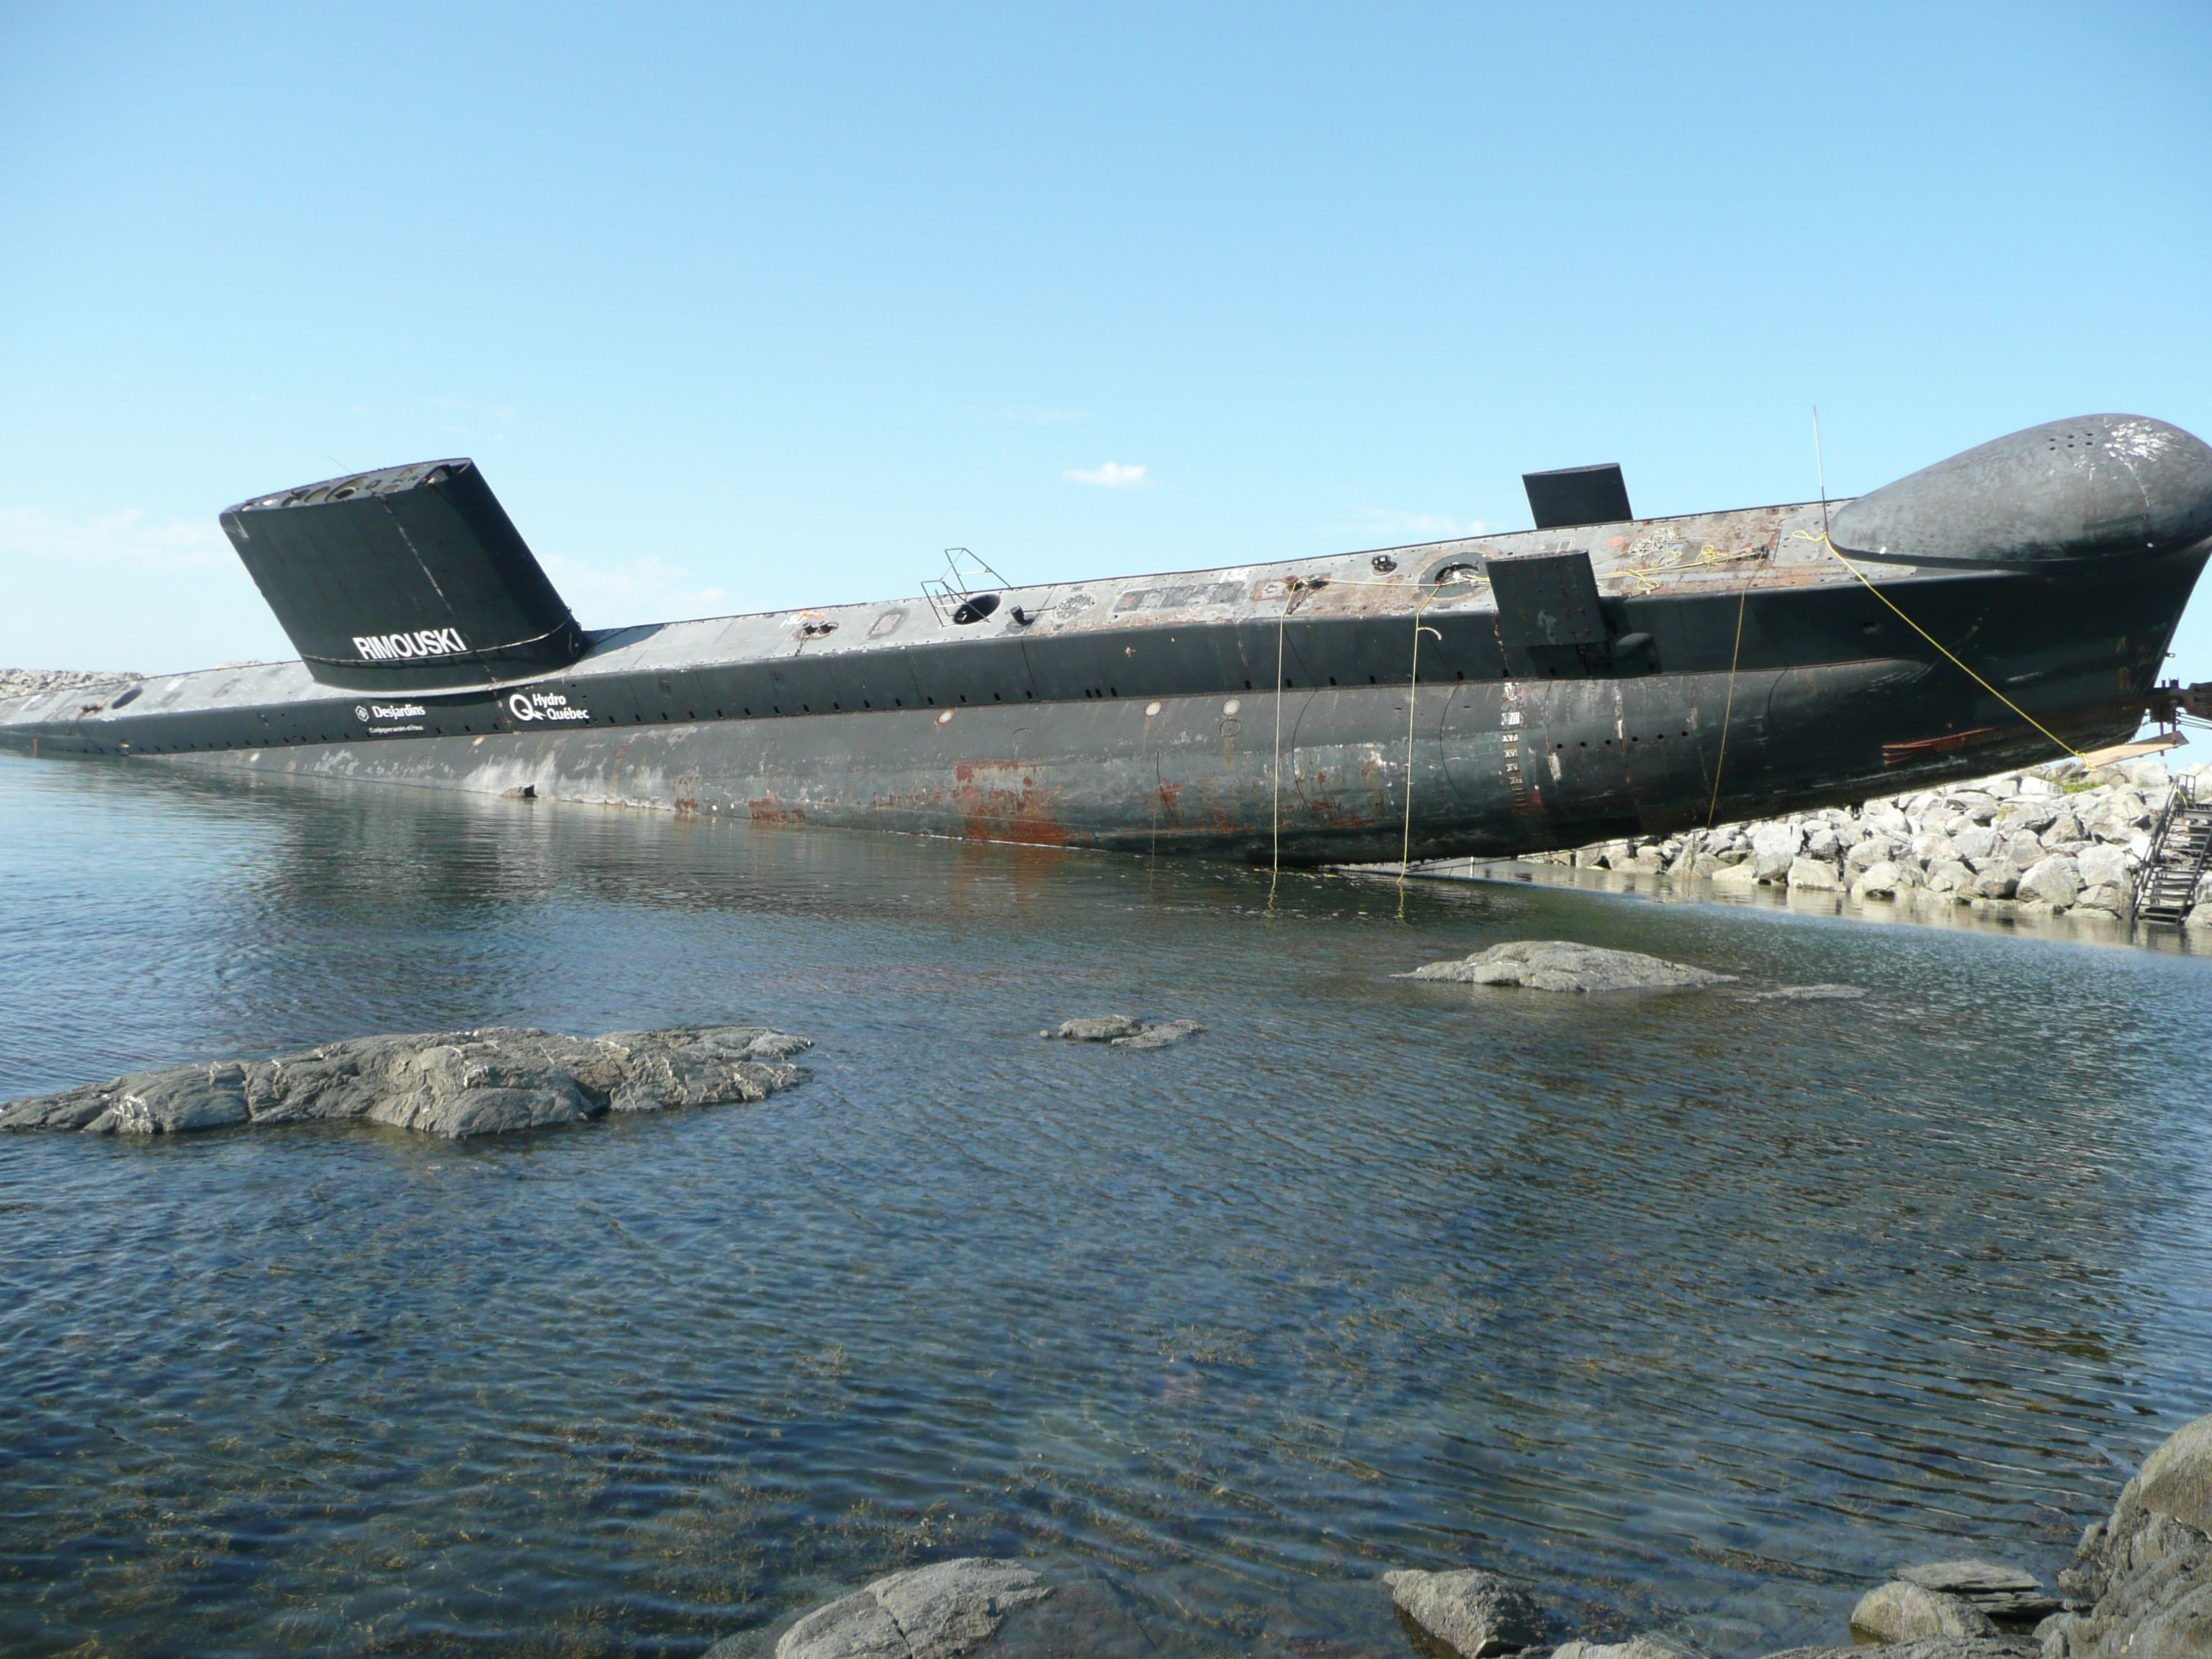 Septembre 2008 Hmcs Onondaga Oberon Class Tumbles Off Its Lift As It Was Being Moved To A Museum Site Abandoned Ships Russian Submarine Submarines